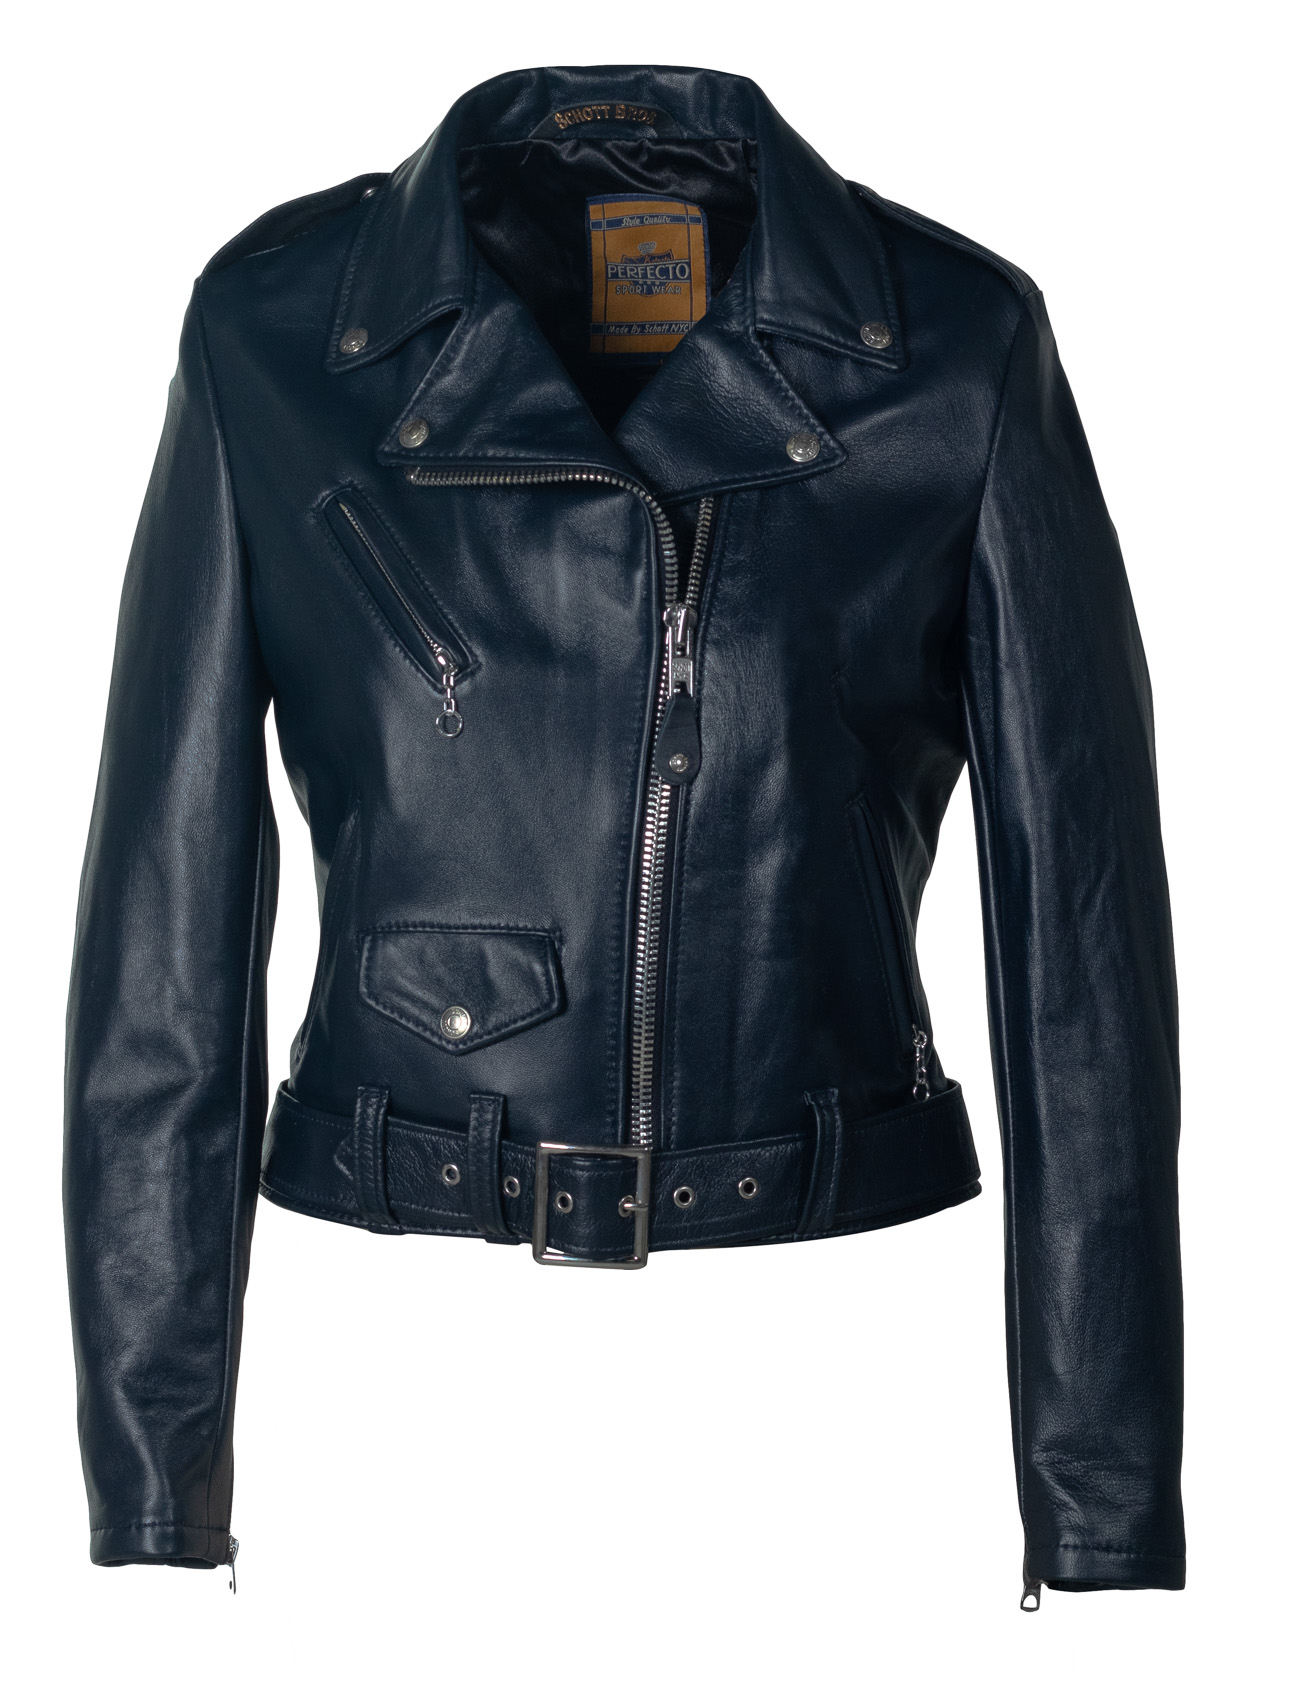 Schott N.Y.C. 210W Women's Cropped Perfecto® in Lambskin Leather Jacket